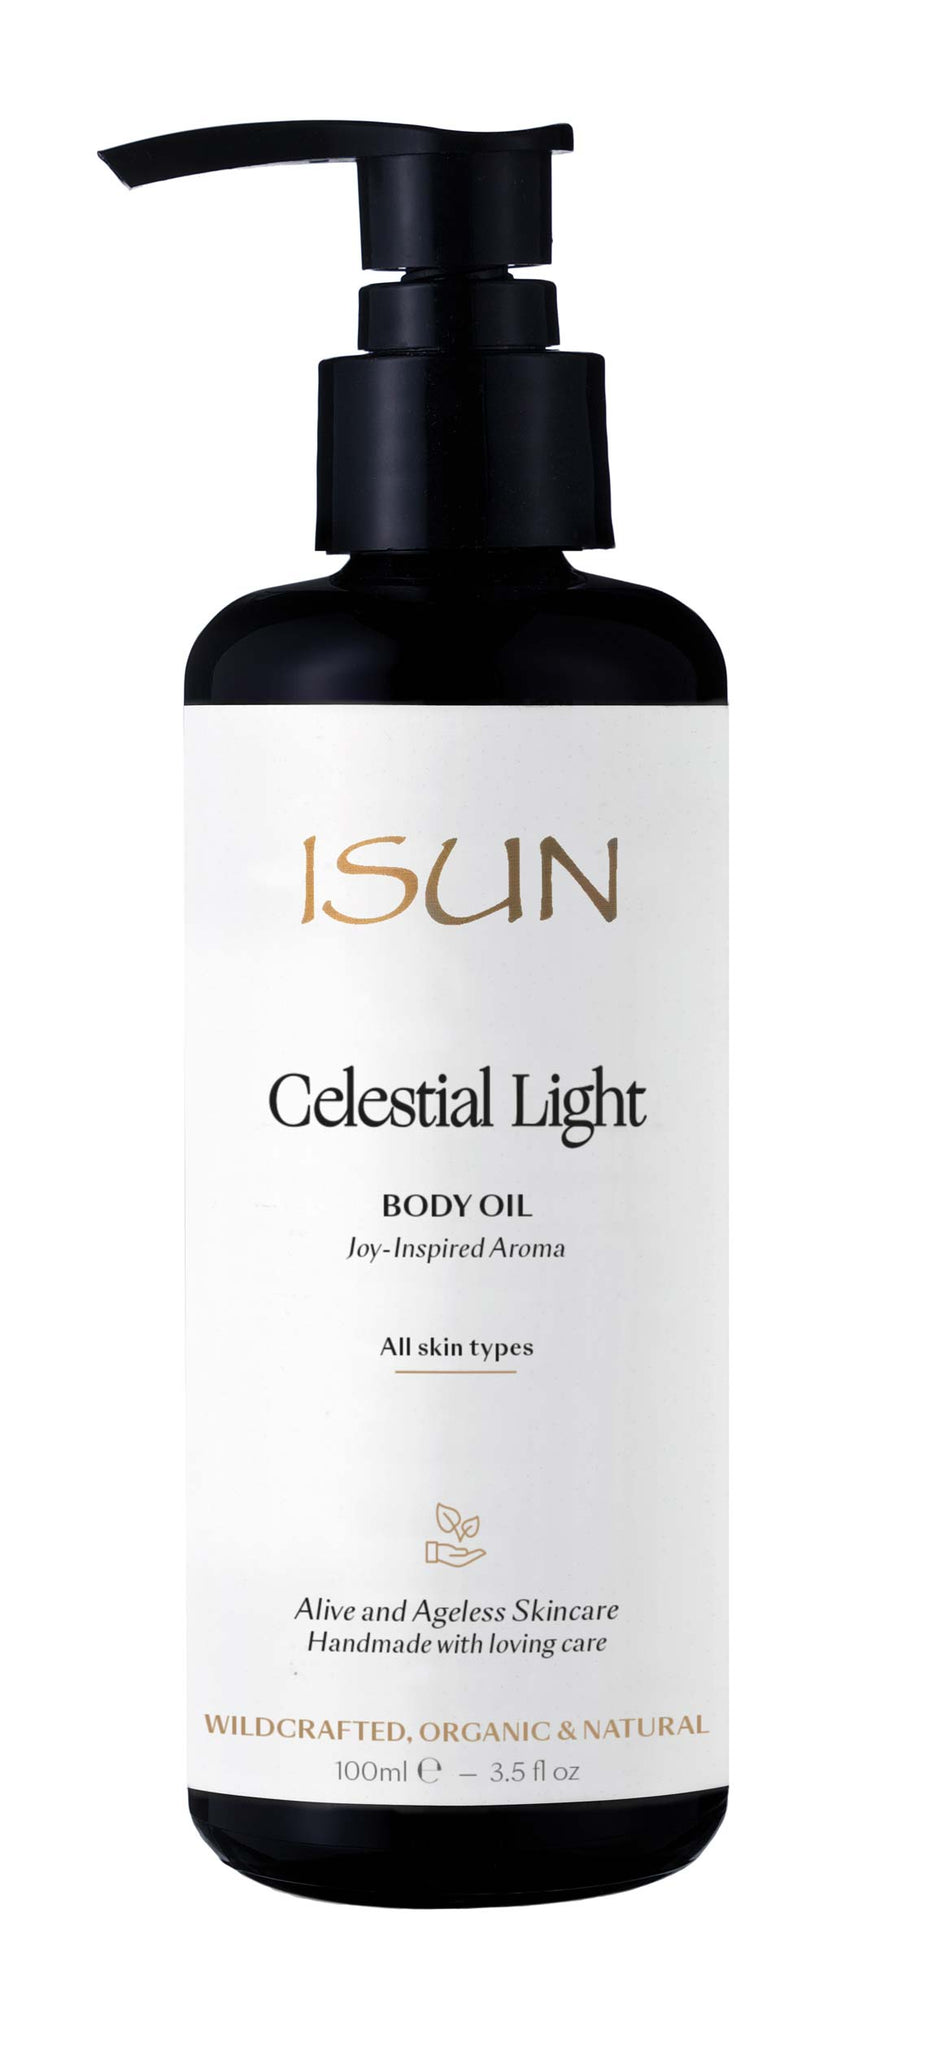 Celestial Light Body Oil